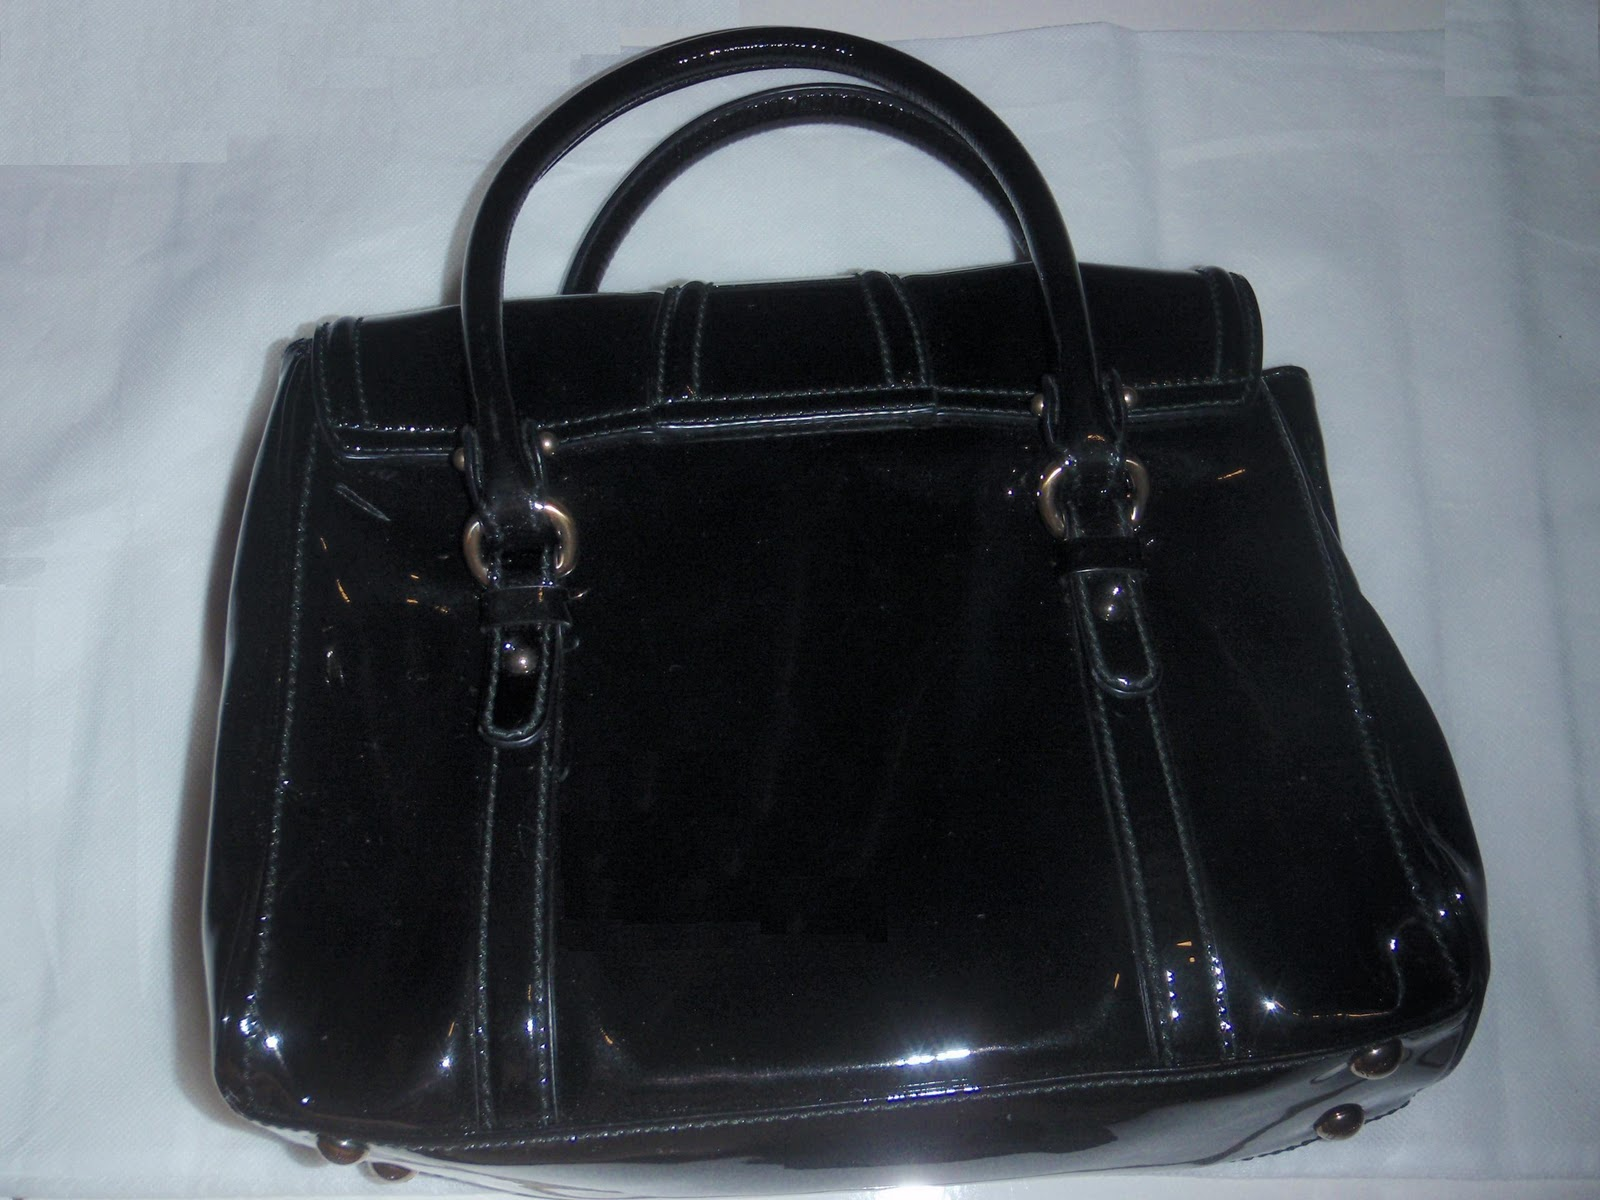 e carboot sale black salvatore ferragamo handbag. Black Bedroom Furniture Sets. Home Design Ideas